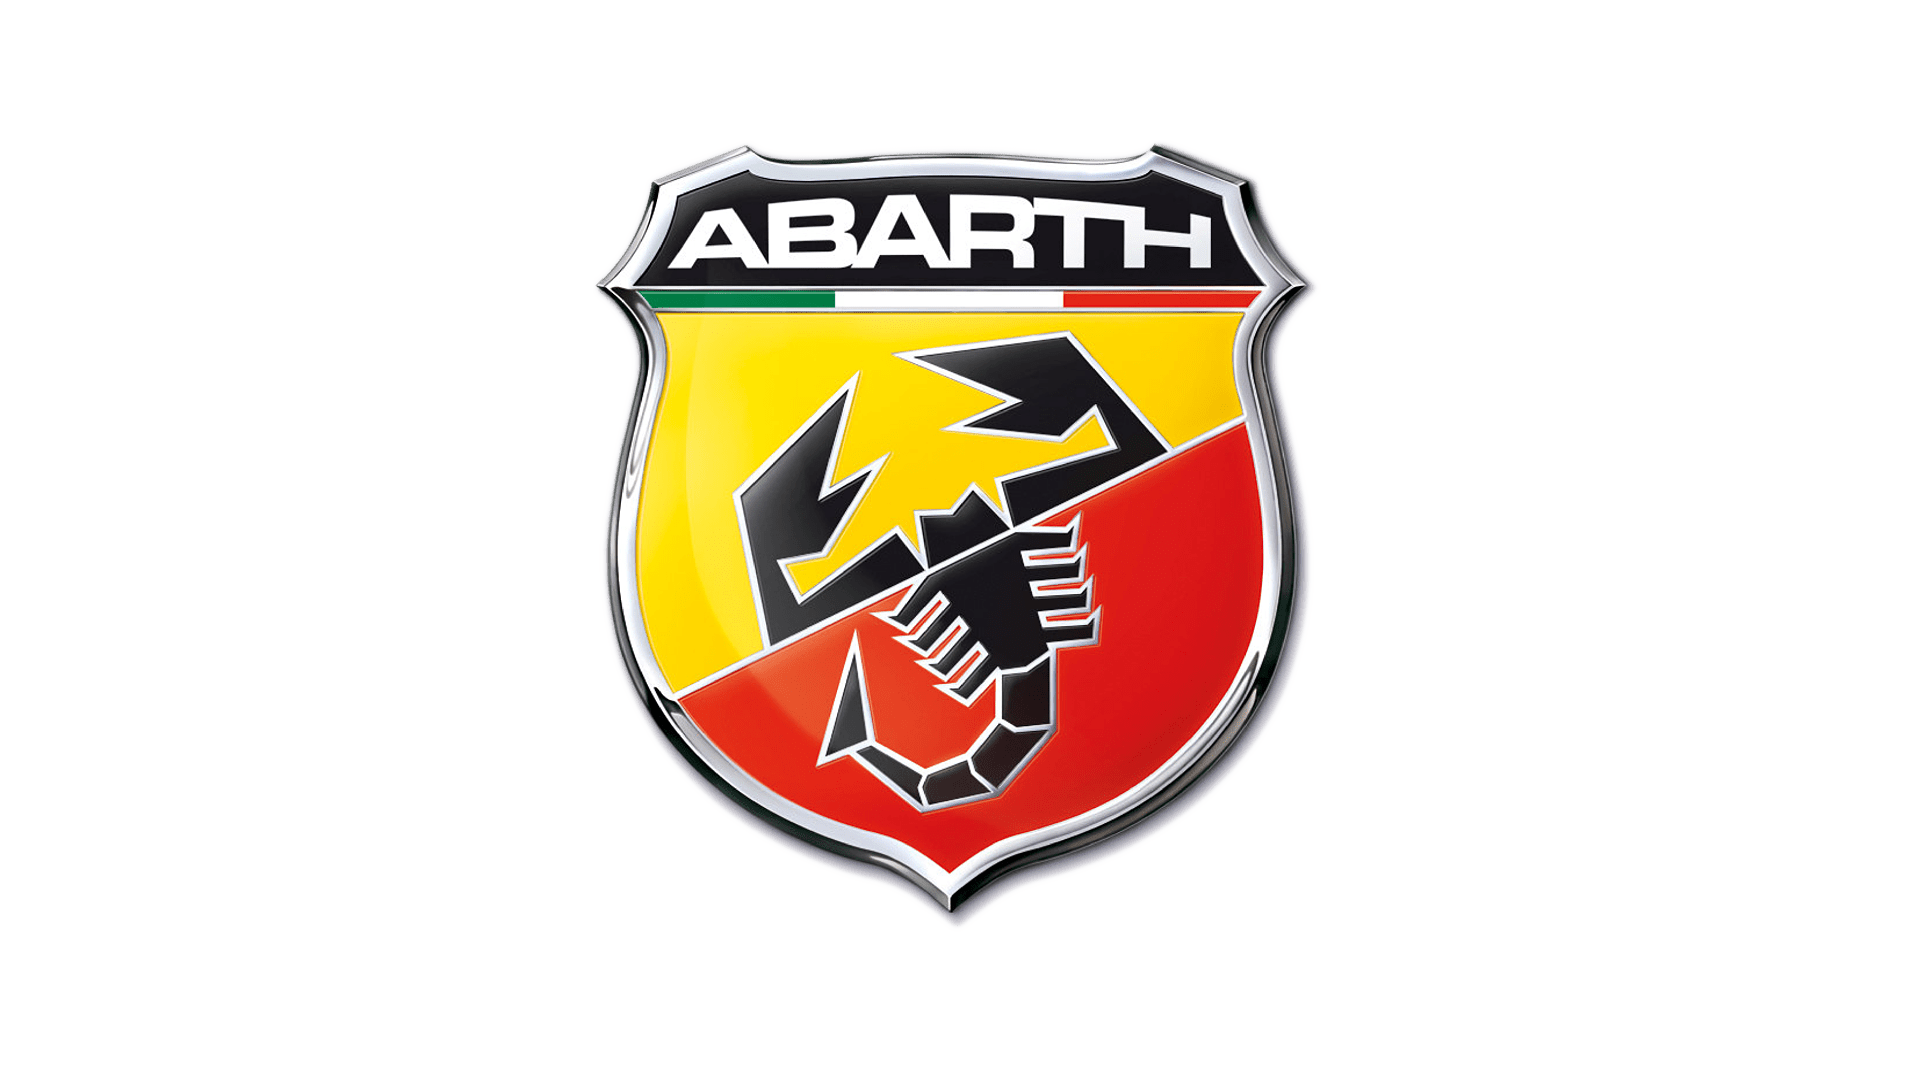 Abarth Car Make Brand Logo